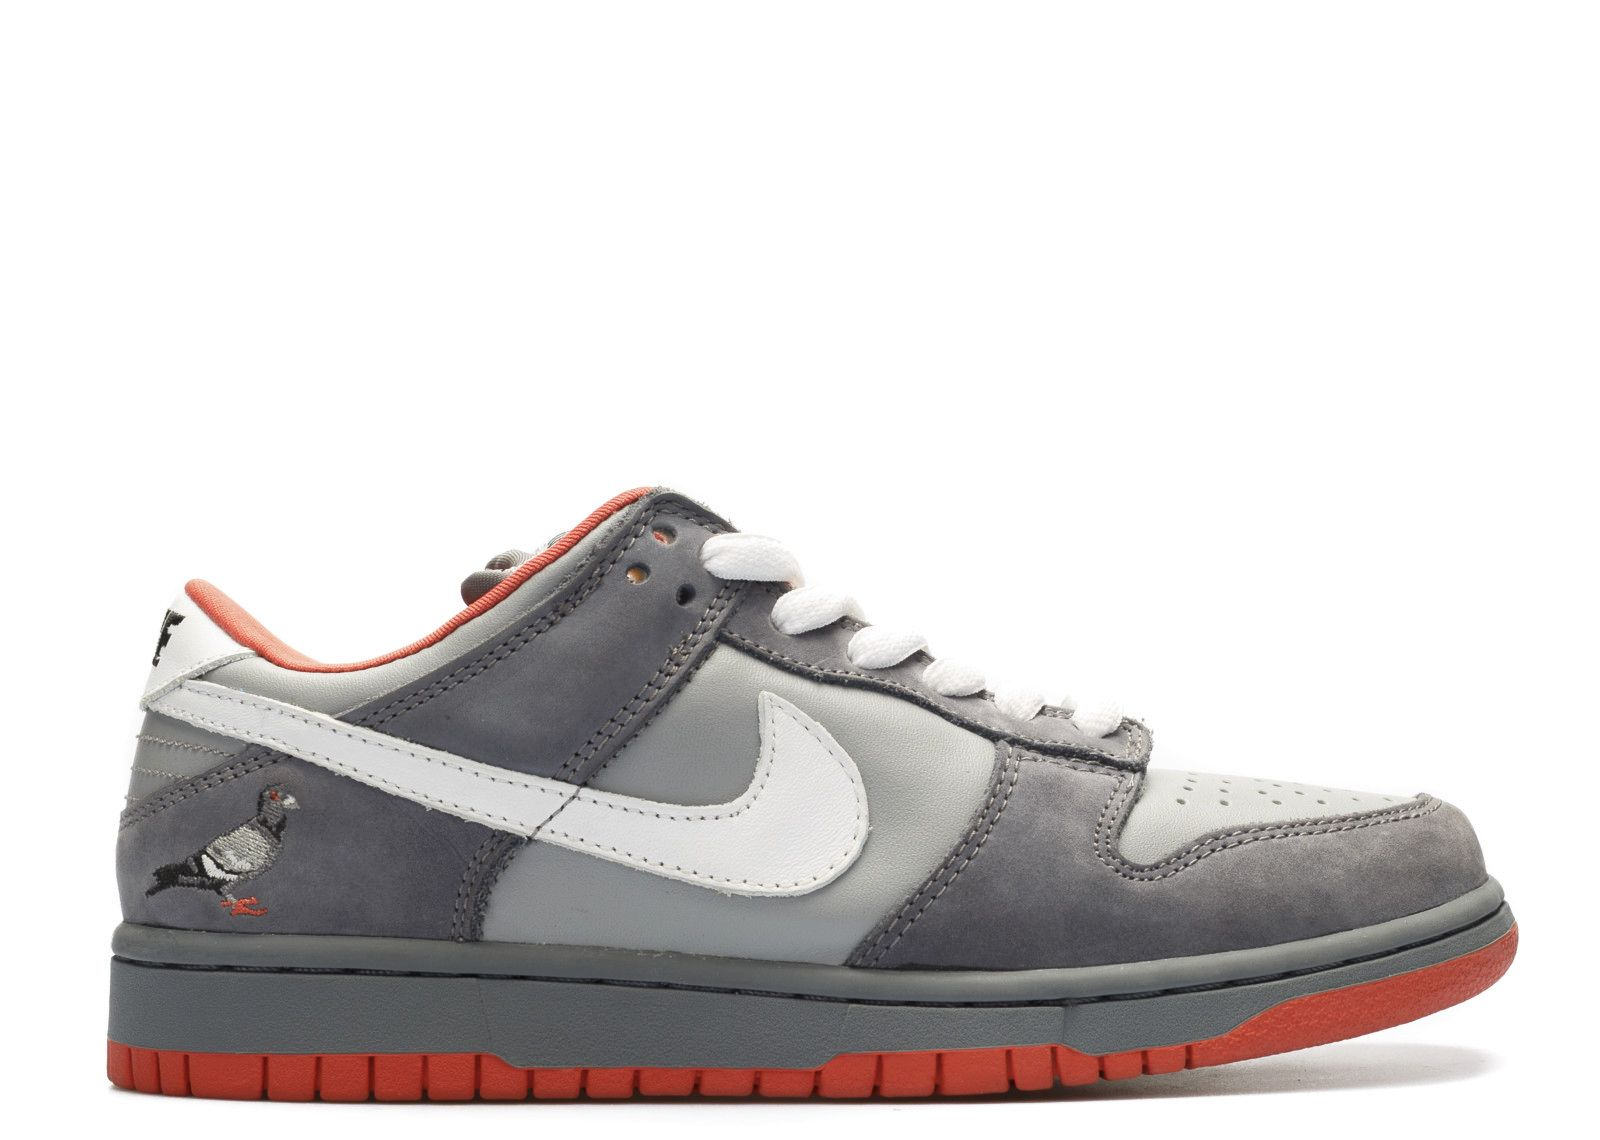 Nike SB Dunk staple nyc pigeon 01 mcmag